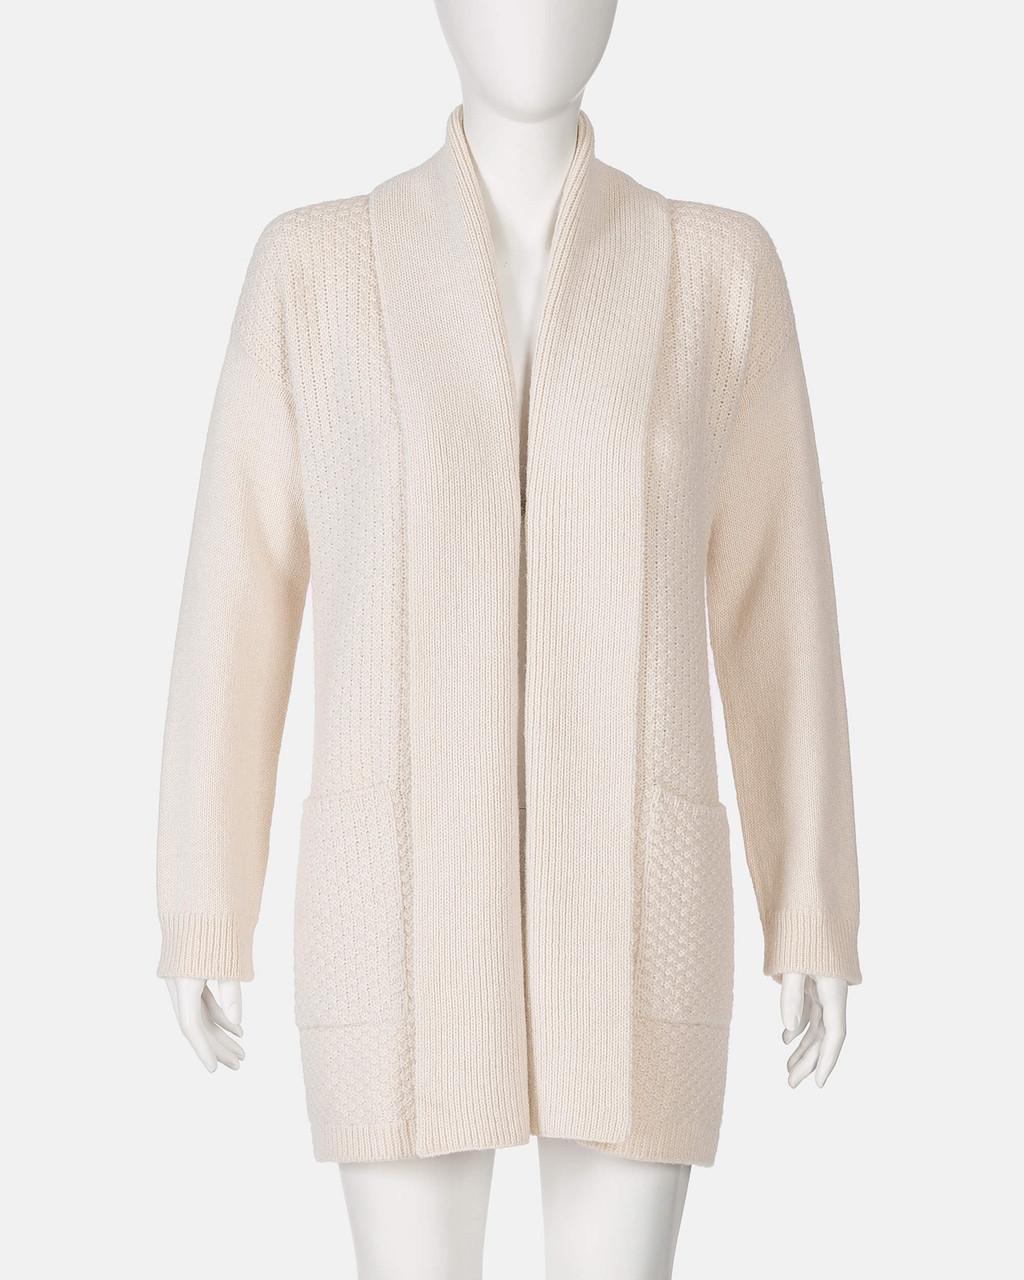 alicia adams alpaca women's whistler coatigan, alpaca blanket coat, alpaca coat womens, alpaca outerwear for women, white alpaca sweater coat